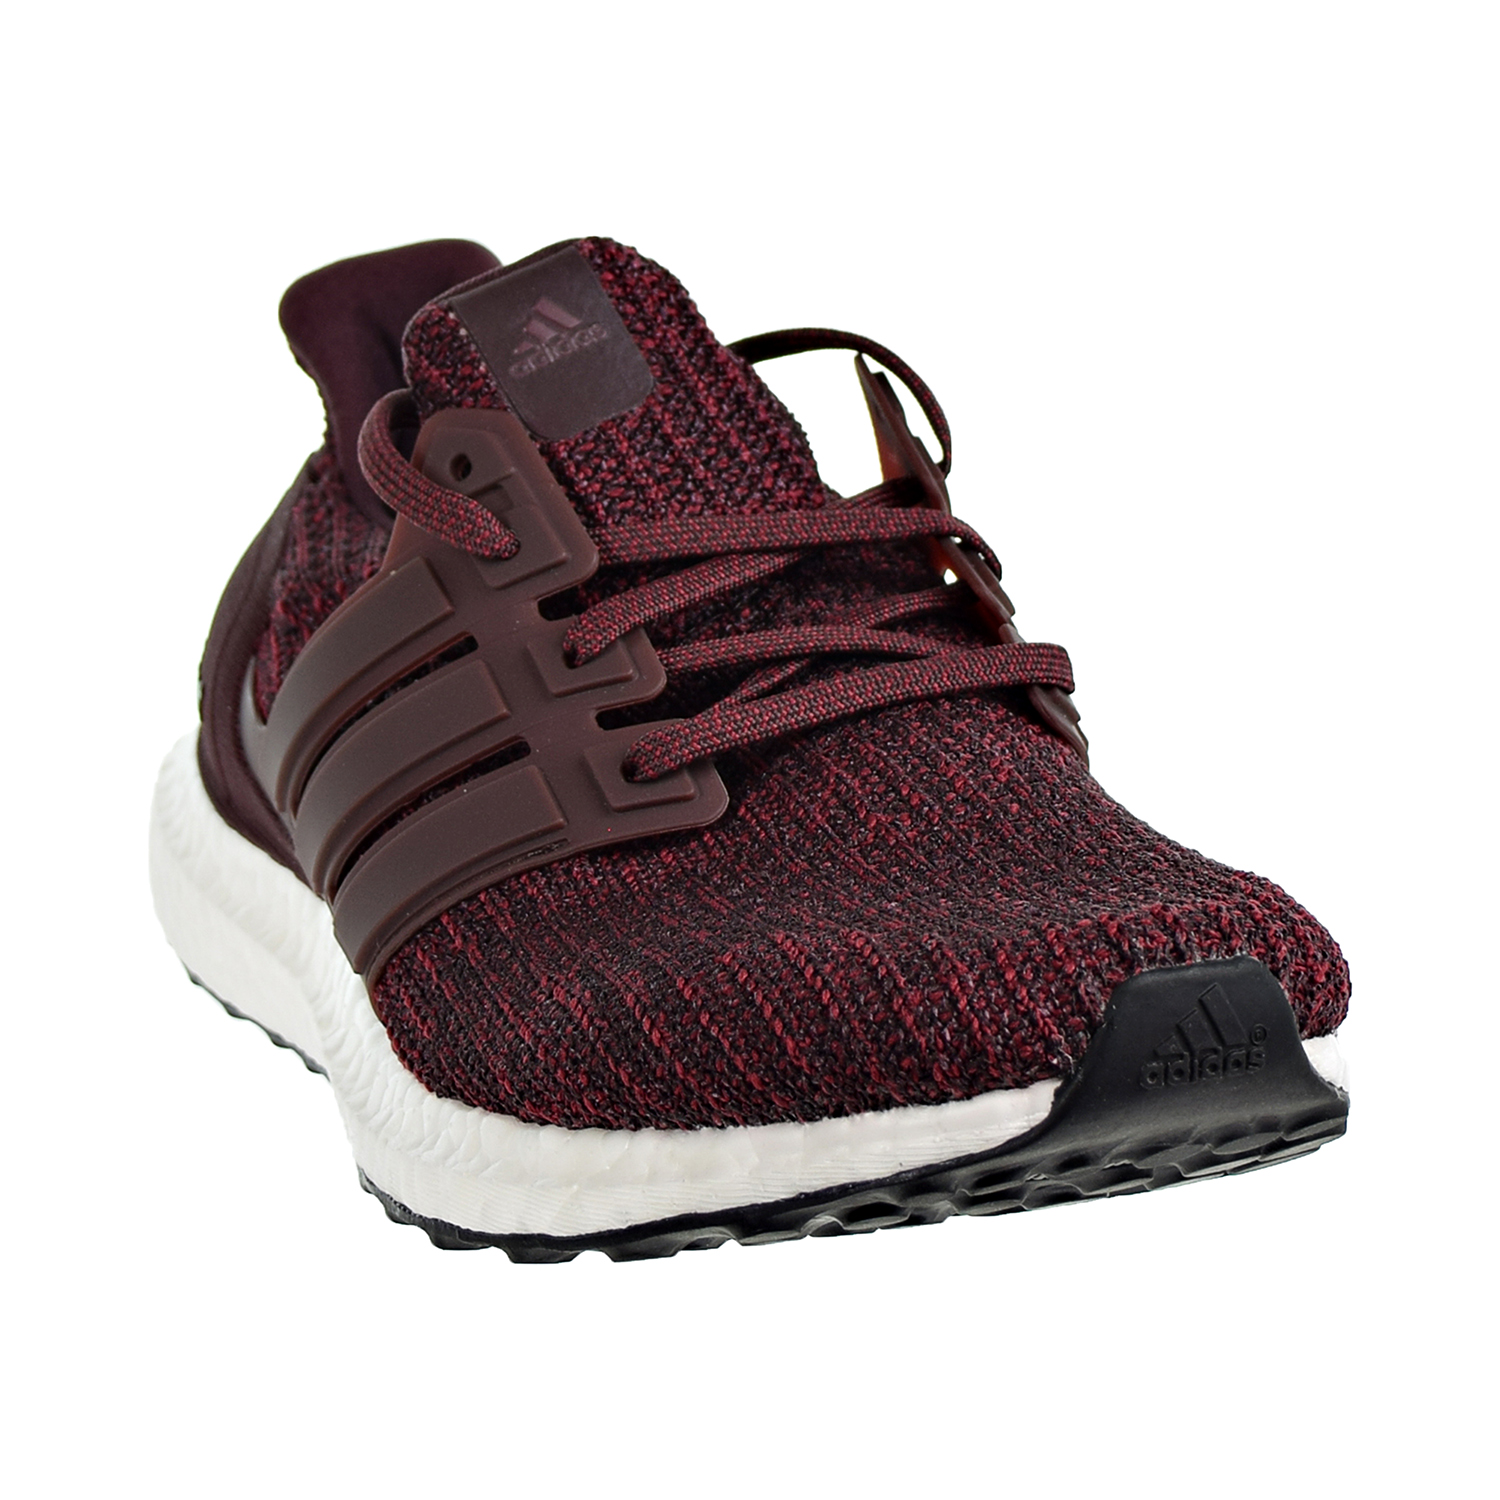 a1a66398a96 Adidas Ultraboost Men s Running Shoes Night Red Night Red Noble Maroon  cm8115